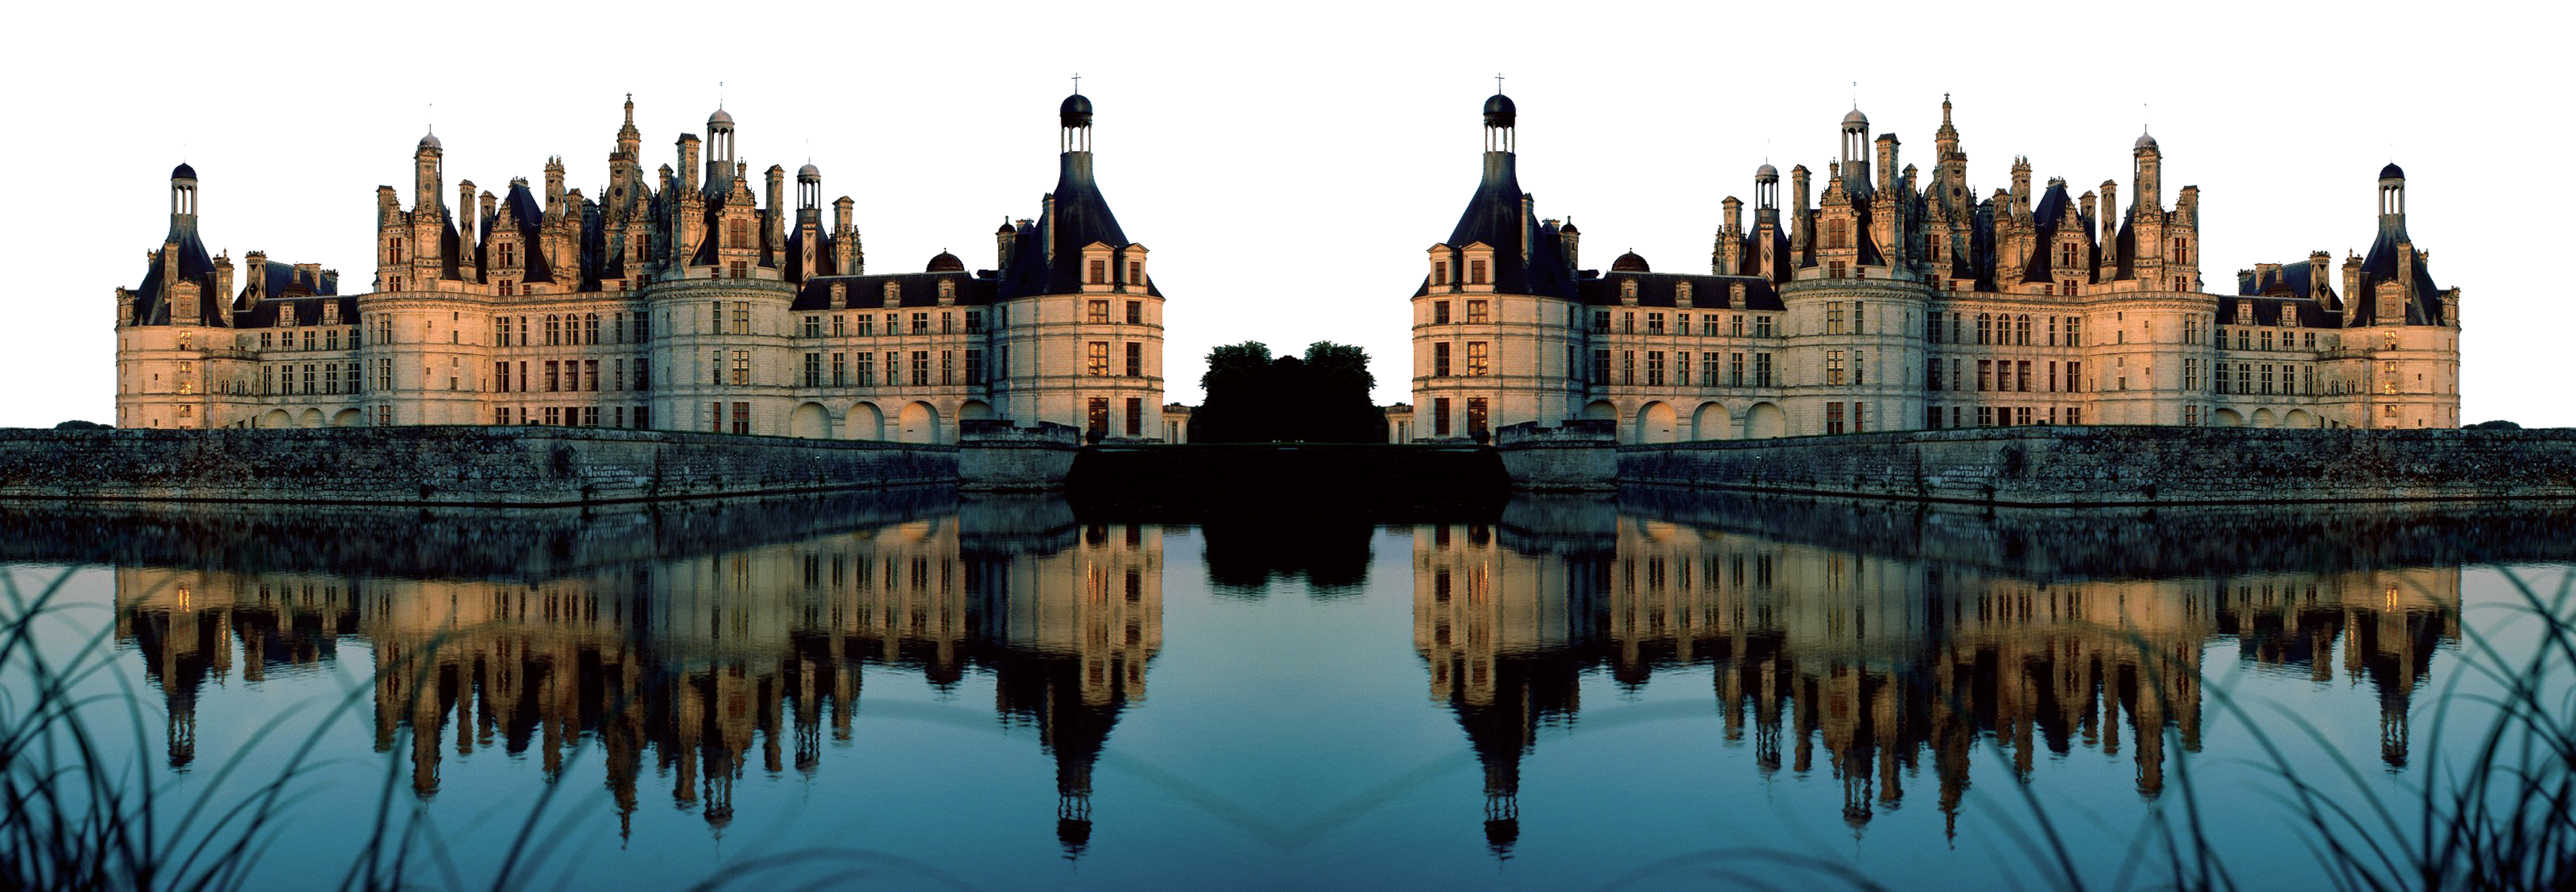 Mirrored Image of a Castle